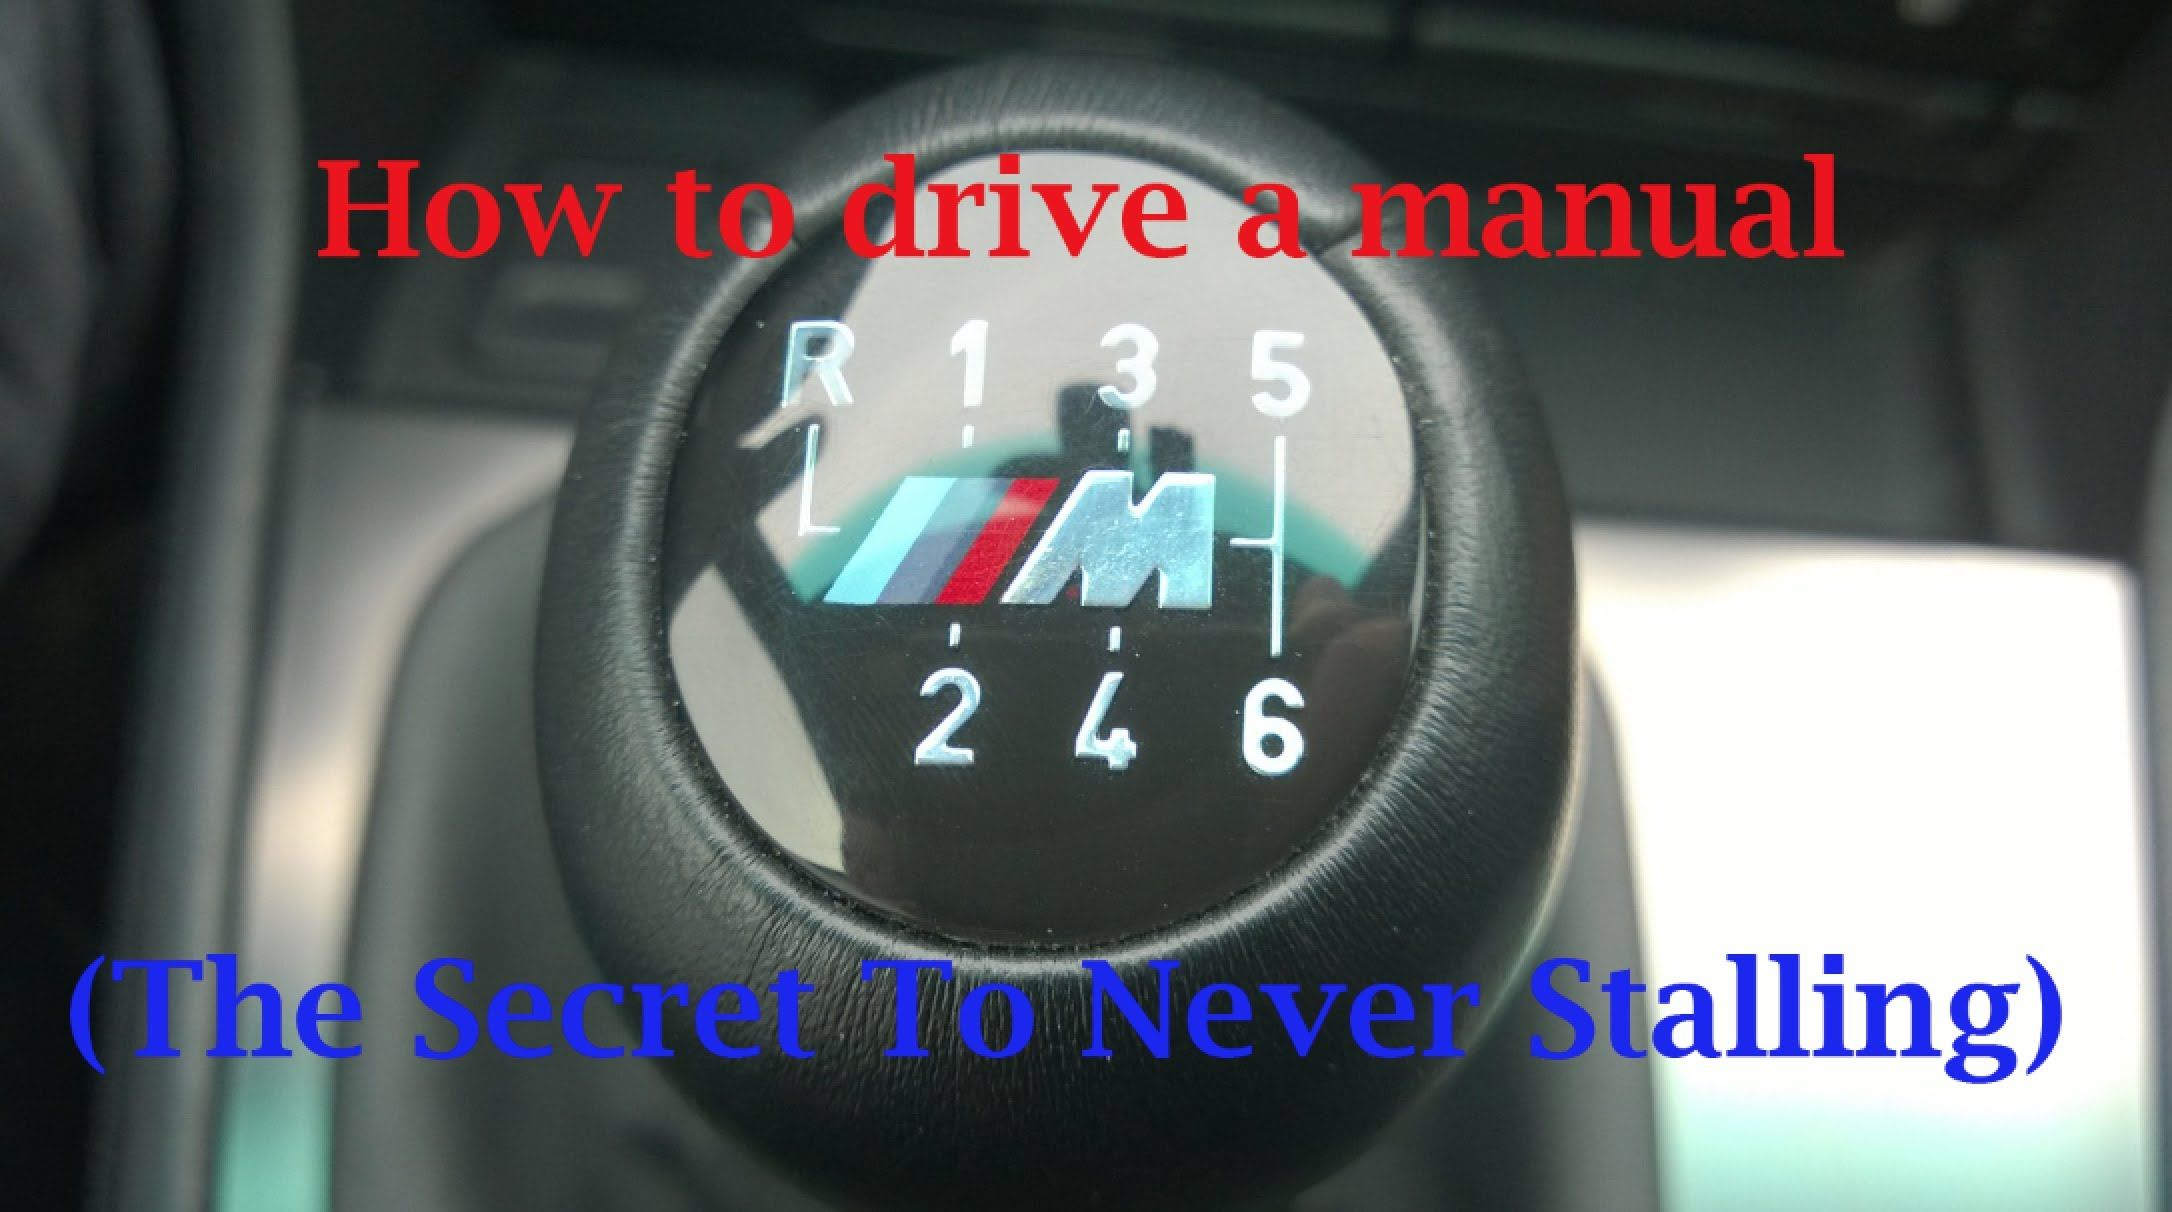 How To Drive A Manual The Secret To Never Stalling Manual Car Learning To Drive Driving